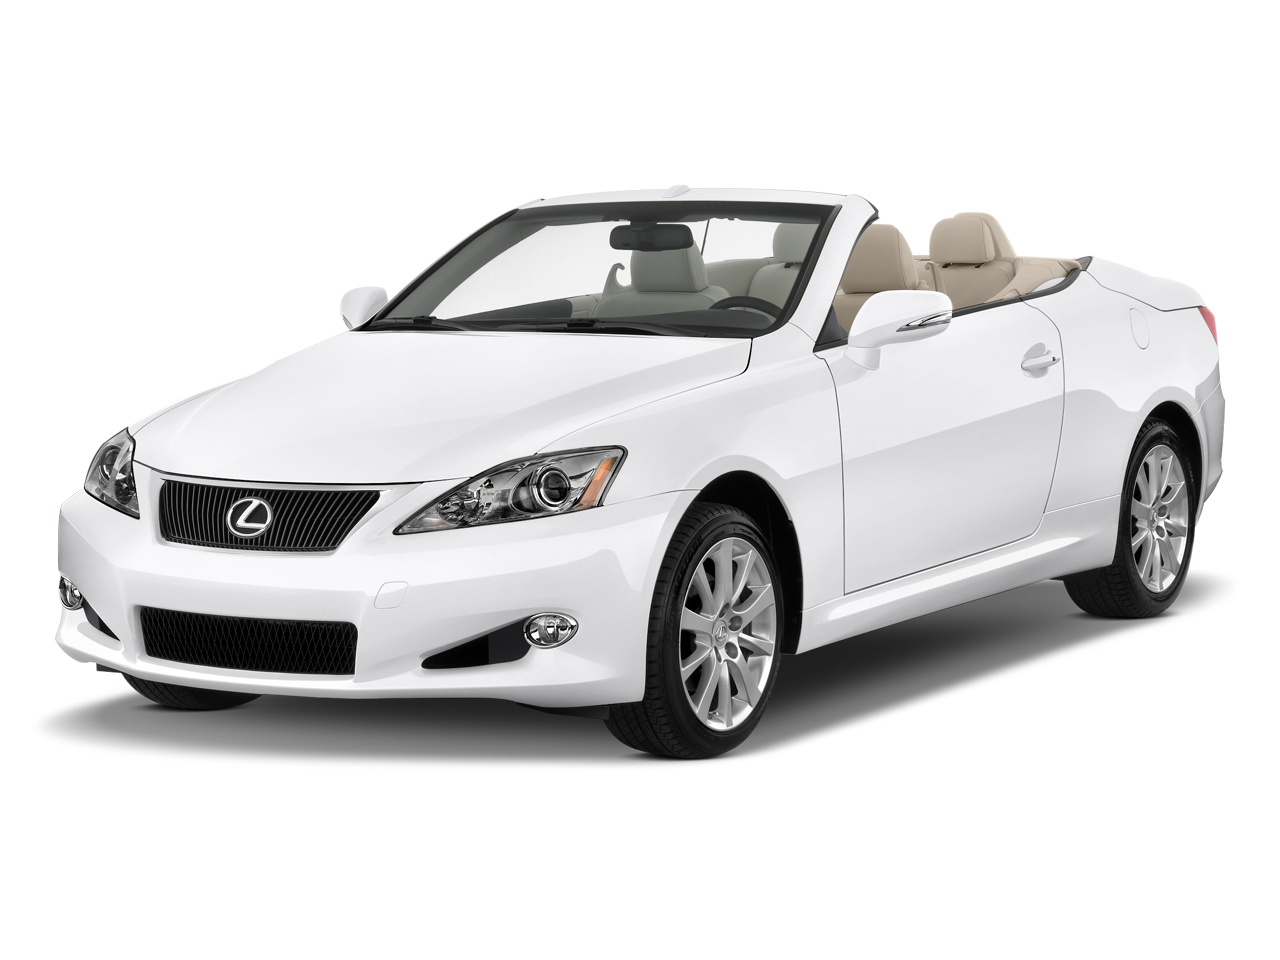 2011 Lexus Is 250c 2 Door Convertible Auto Angular Front